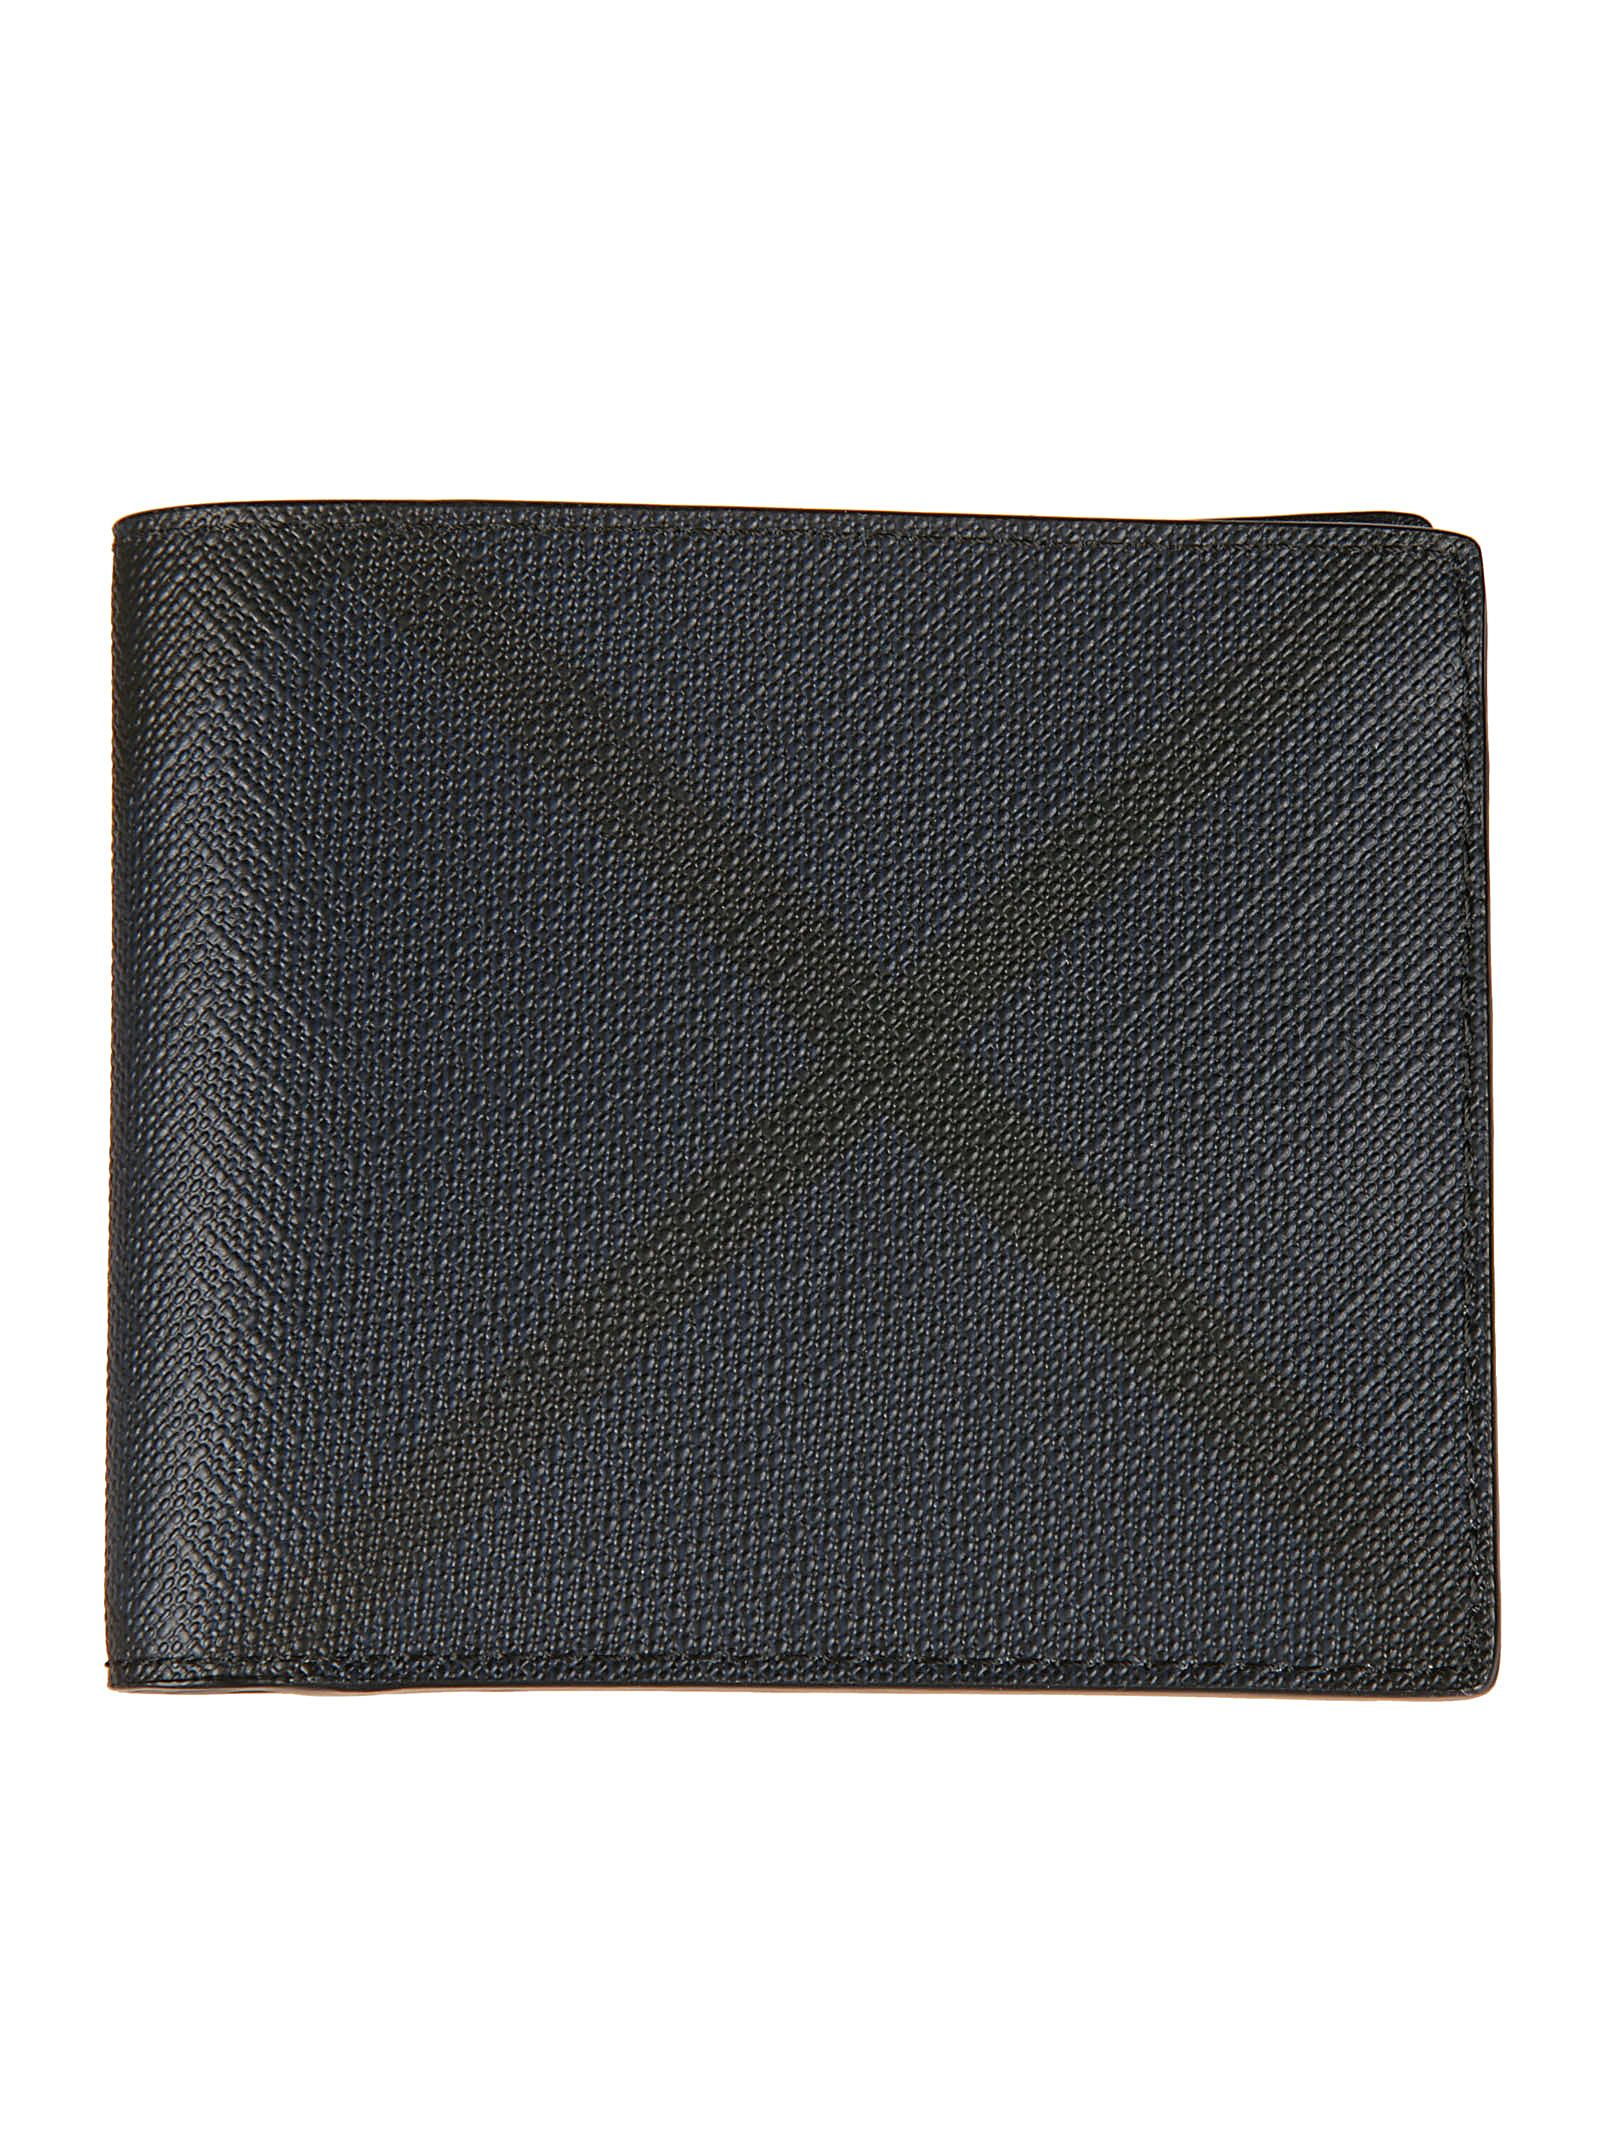 Burberry London Check International Bifold Wallet